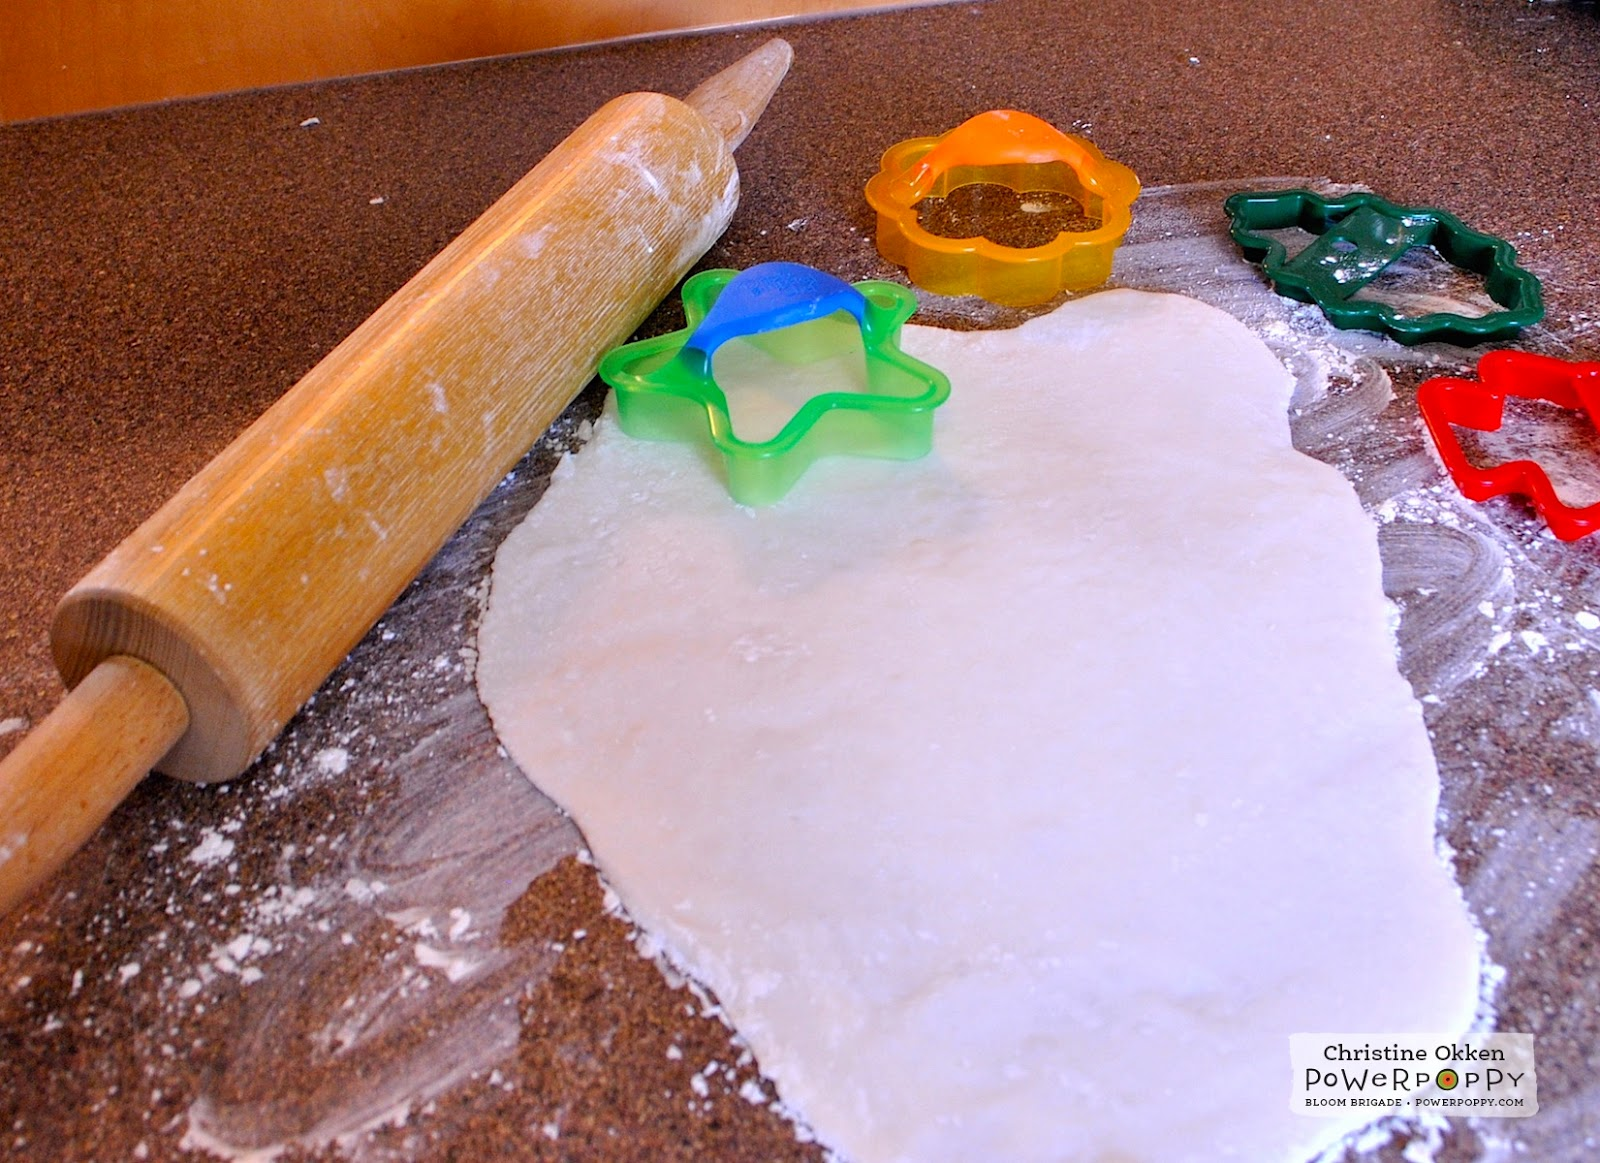 Rolling pin ornament - Getting Your Dough Thickness Even Throughout Really Helps Improve Your Finished Ornaments Then Use Cookie Cutters To Cut Out Ornament Shapes You Would